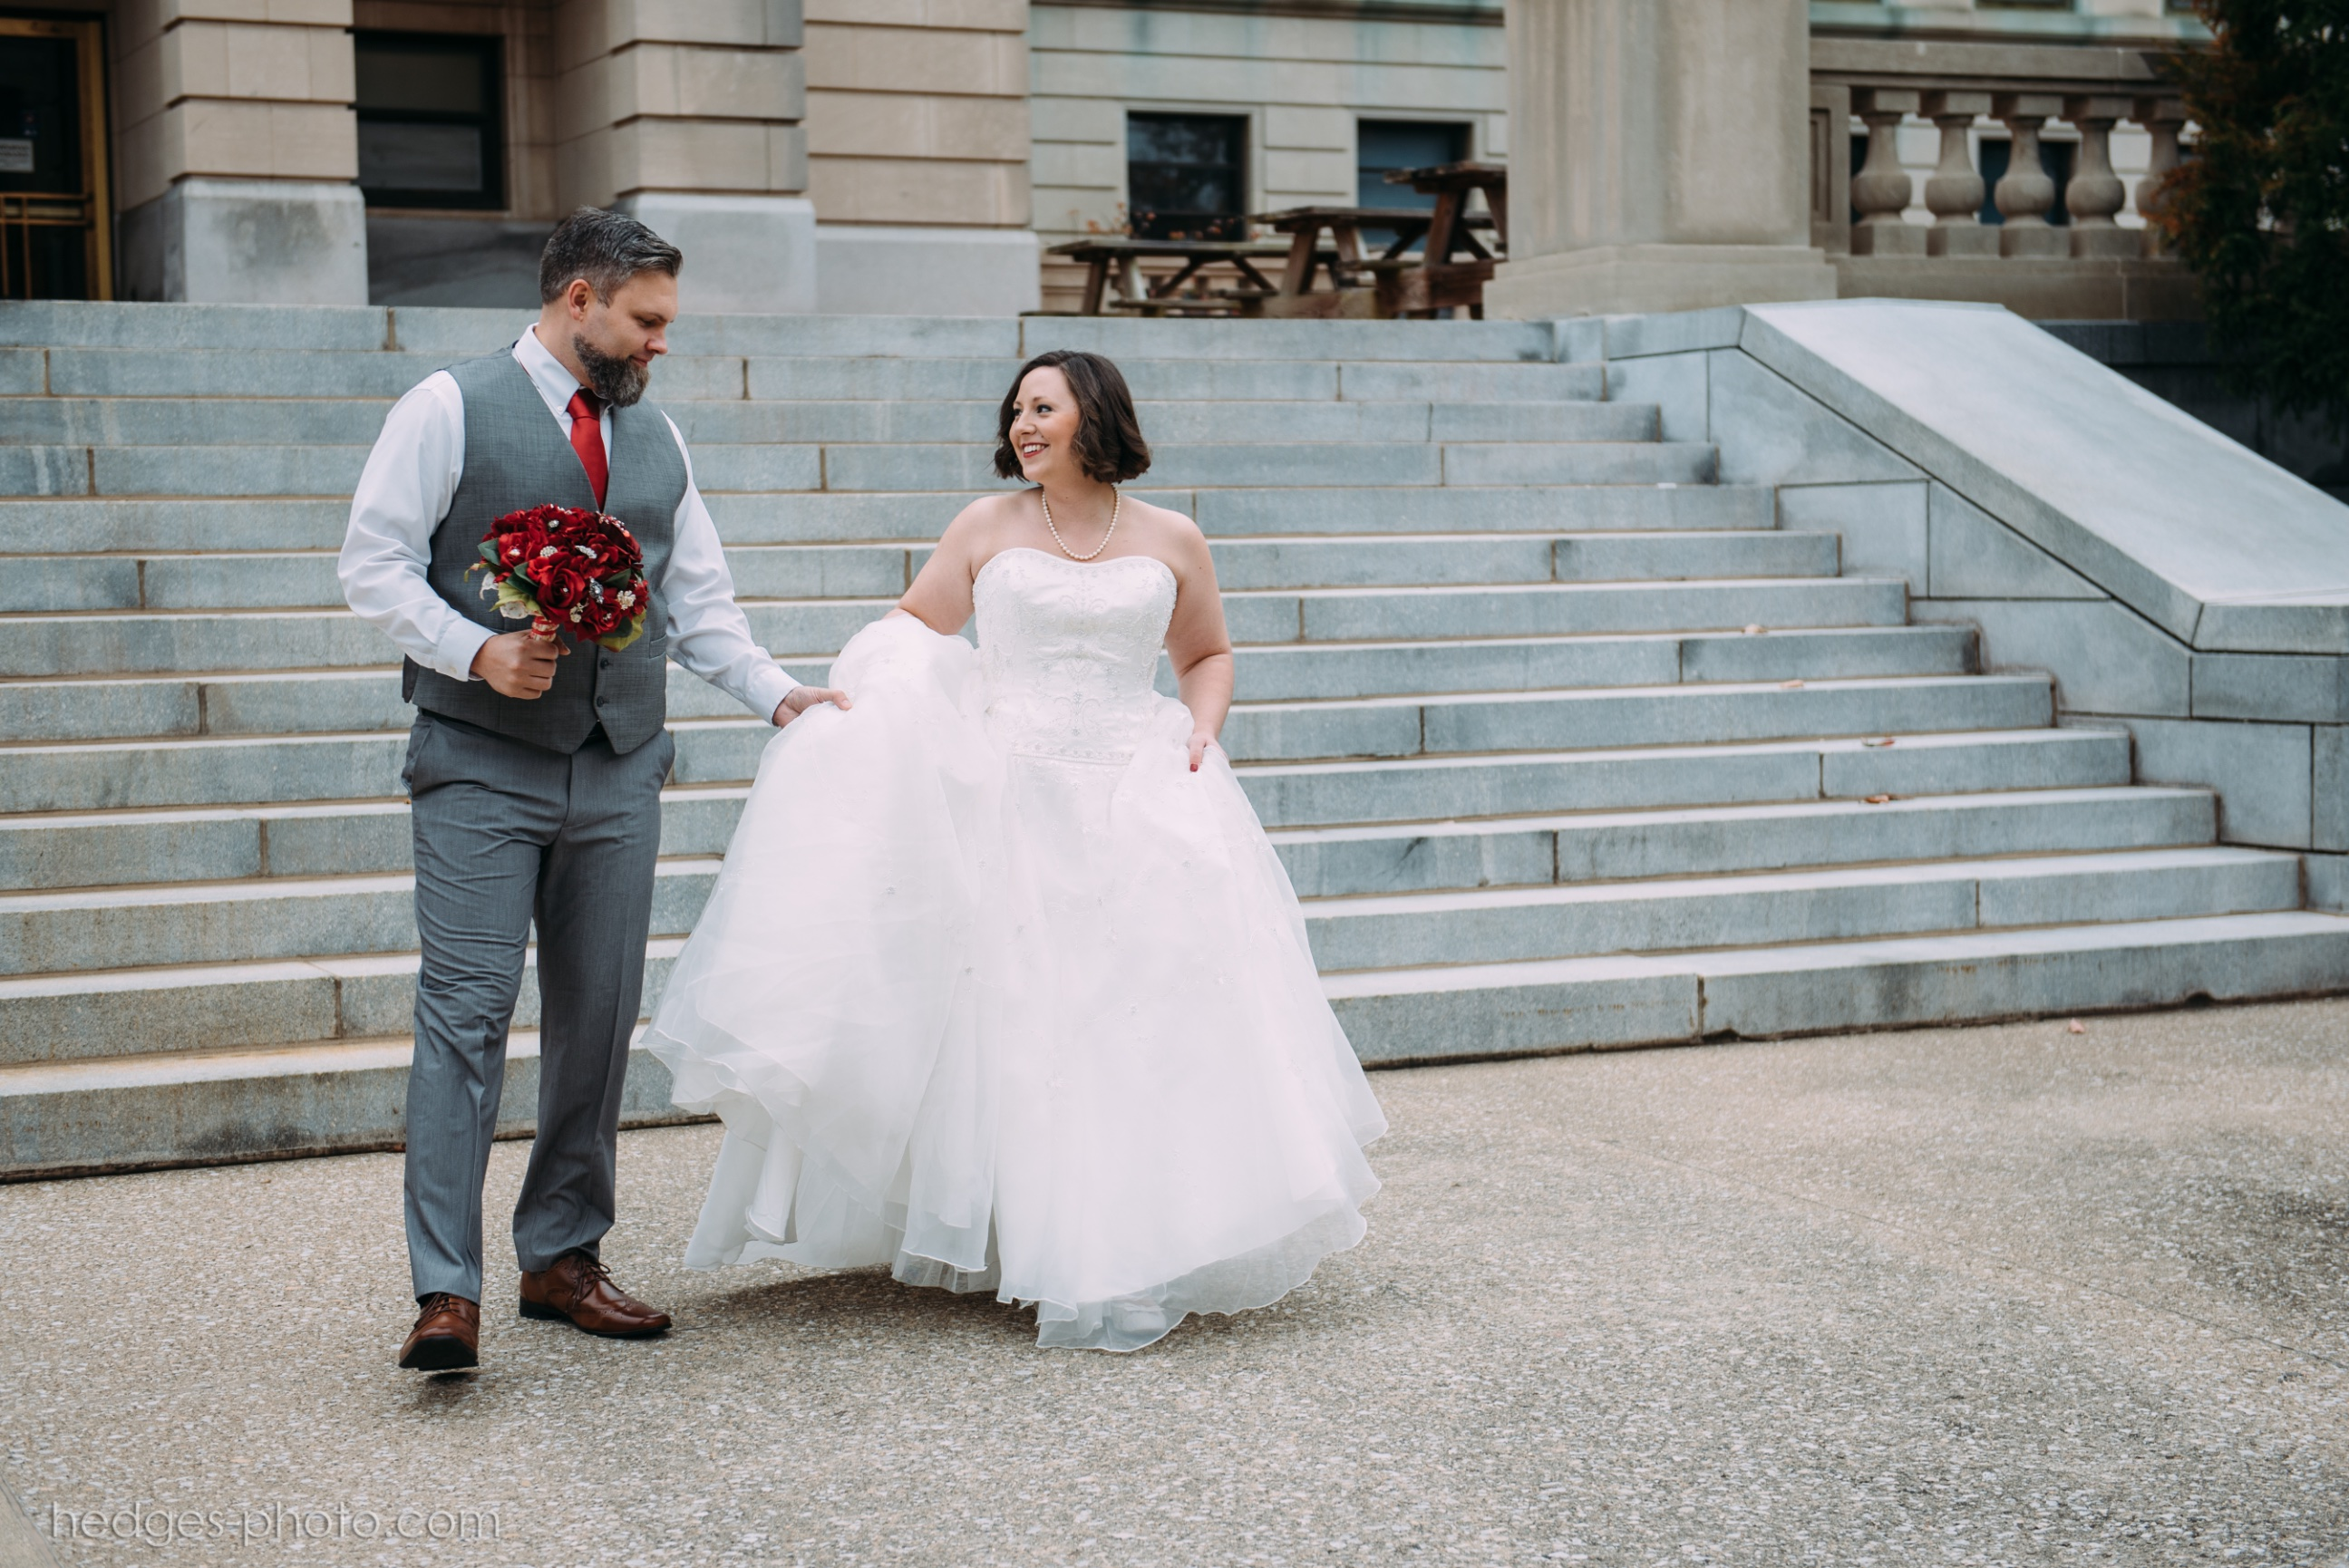 Rick and Domonique, Classic downtown elopement in Frankfort KY ...